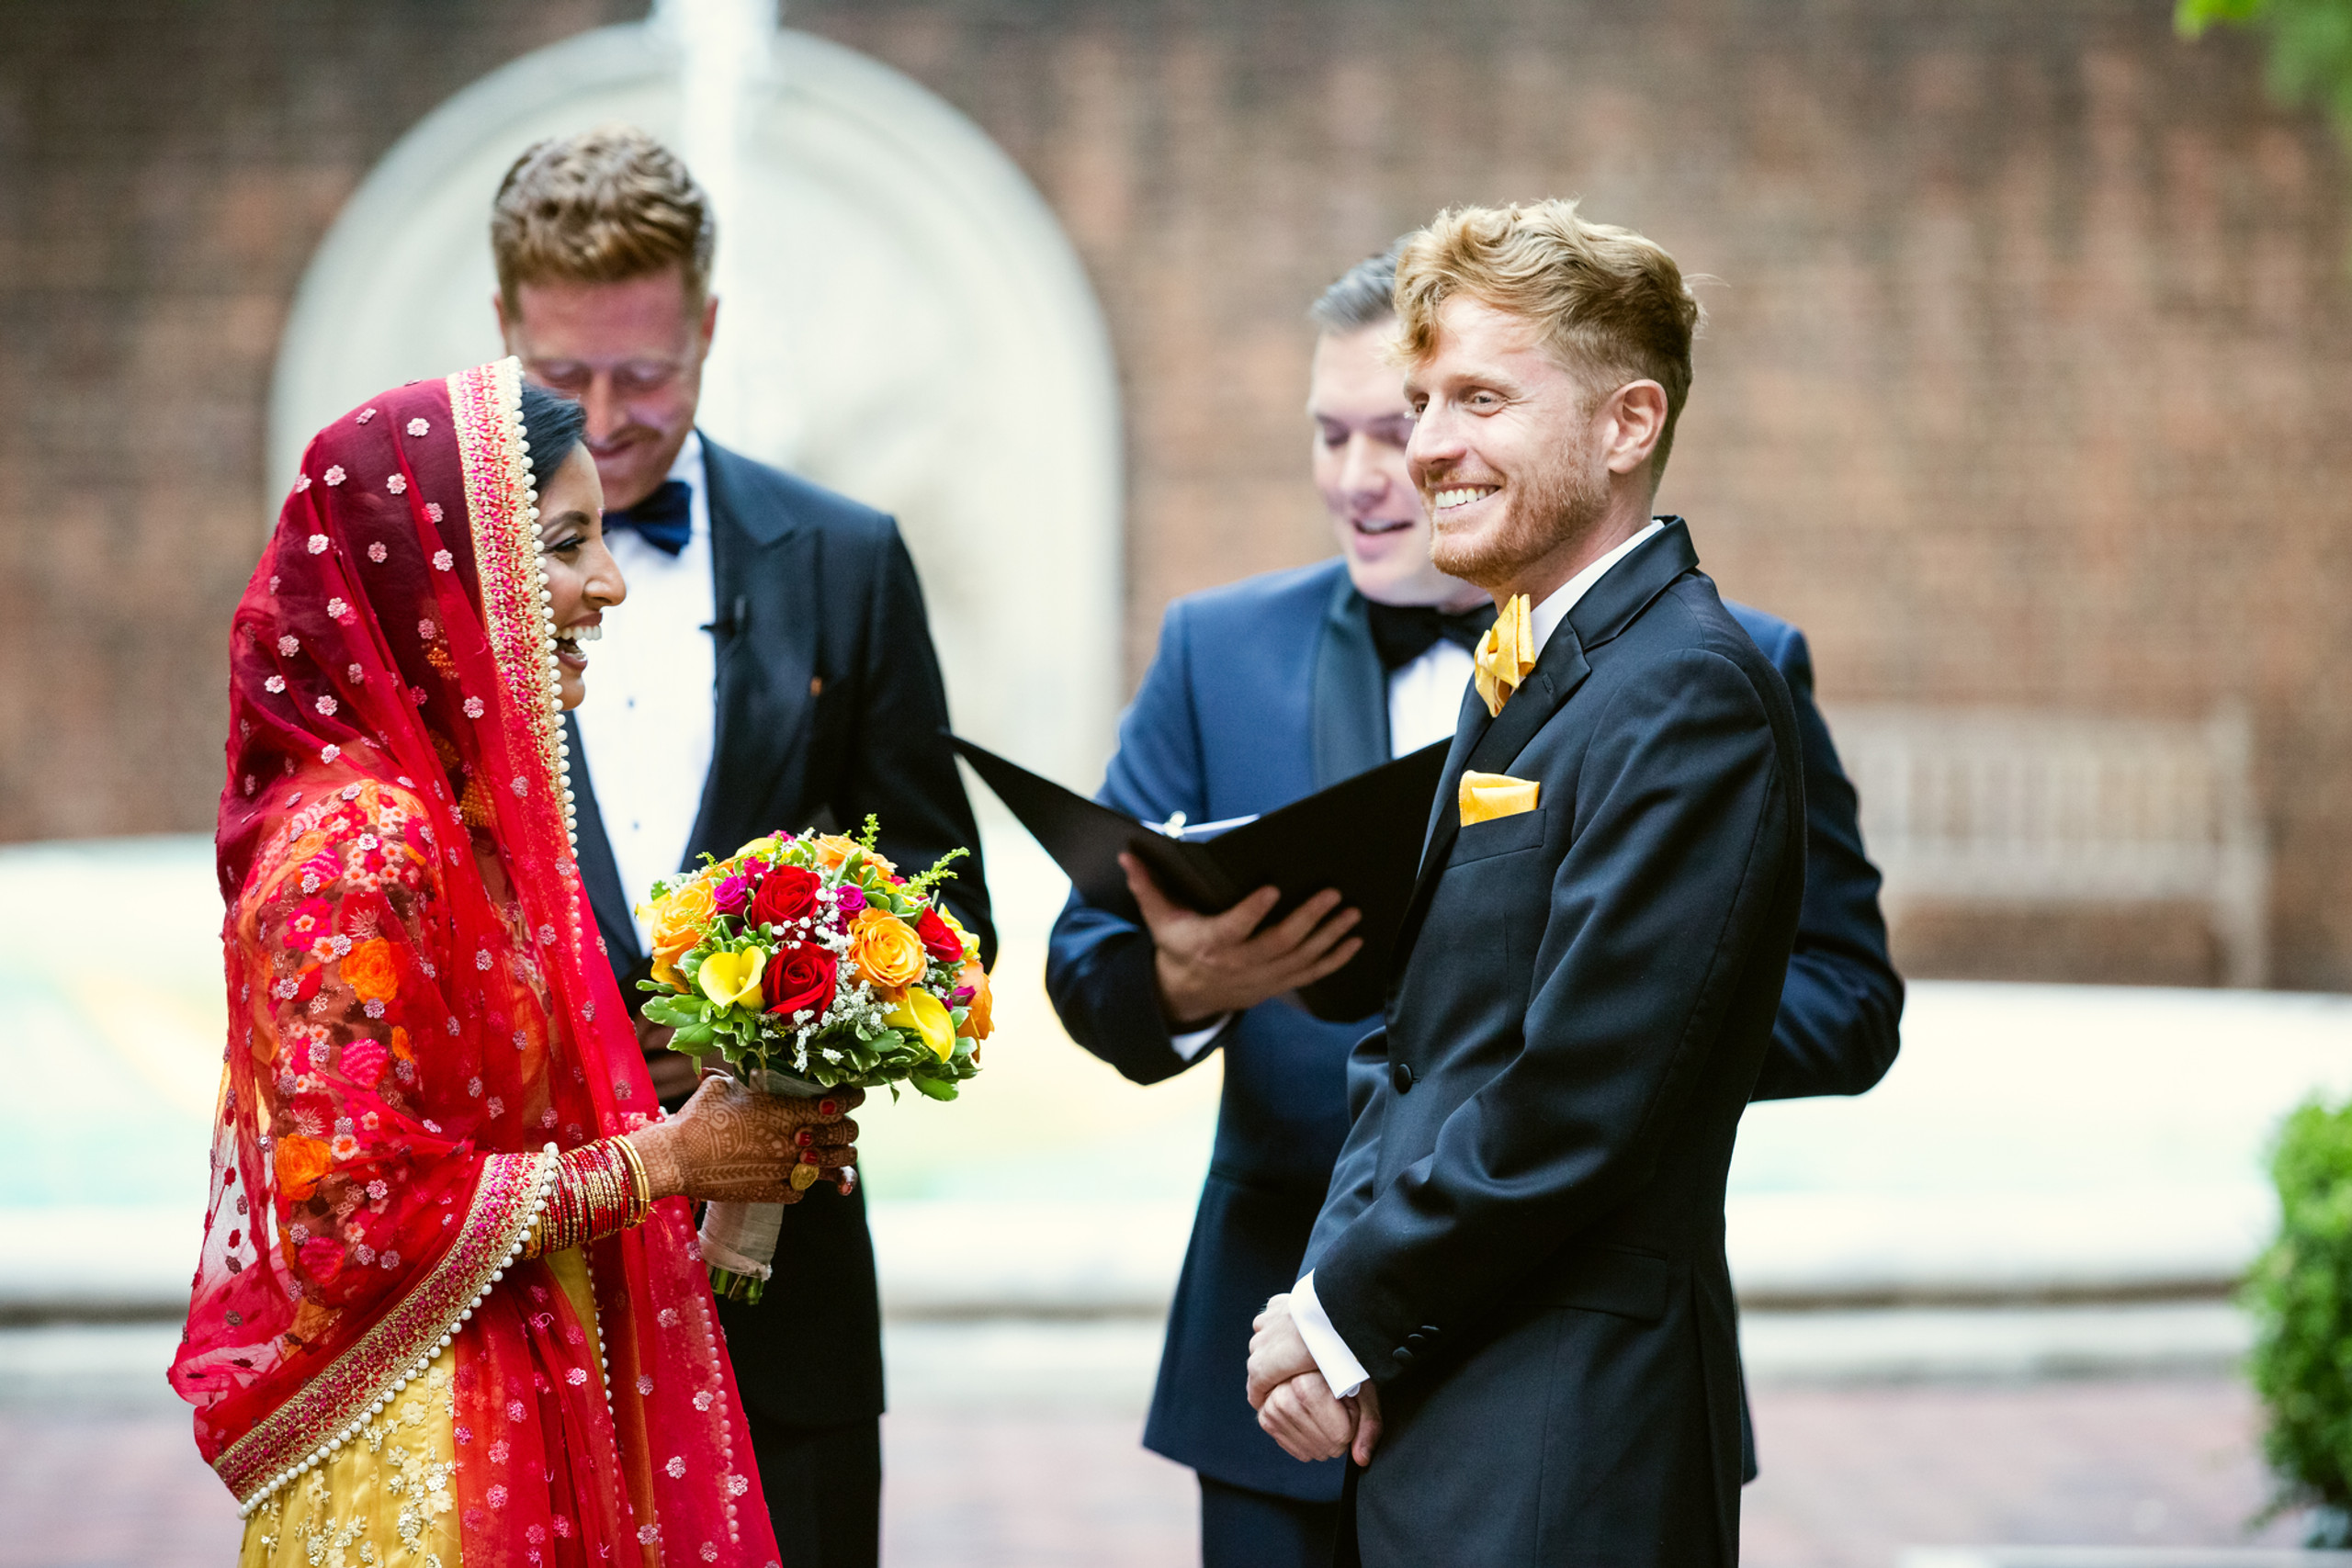 The bride and groom share a laugh during the wedding ceremony at the Penn Museum in Philadelphia, Pennsylvania.